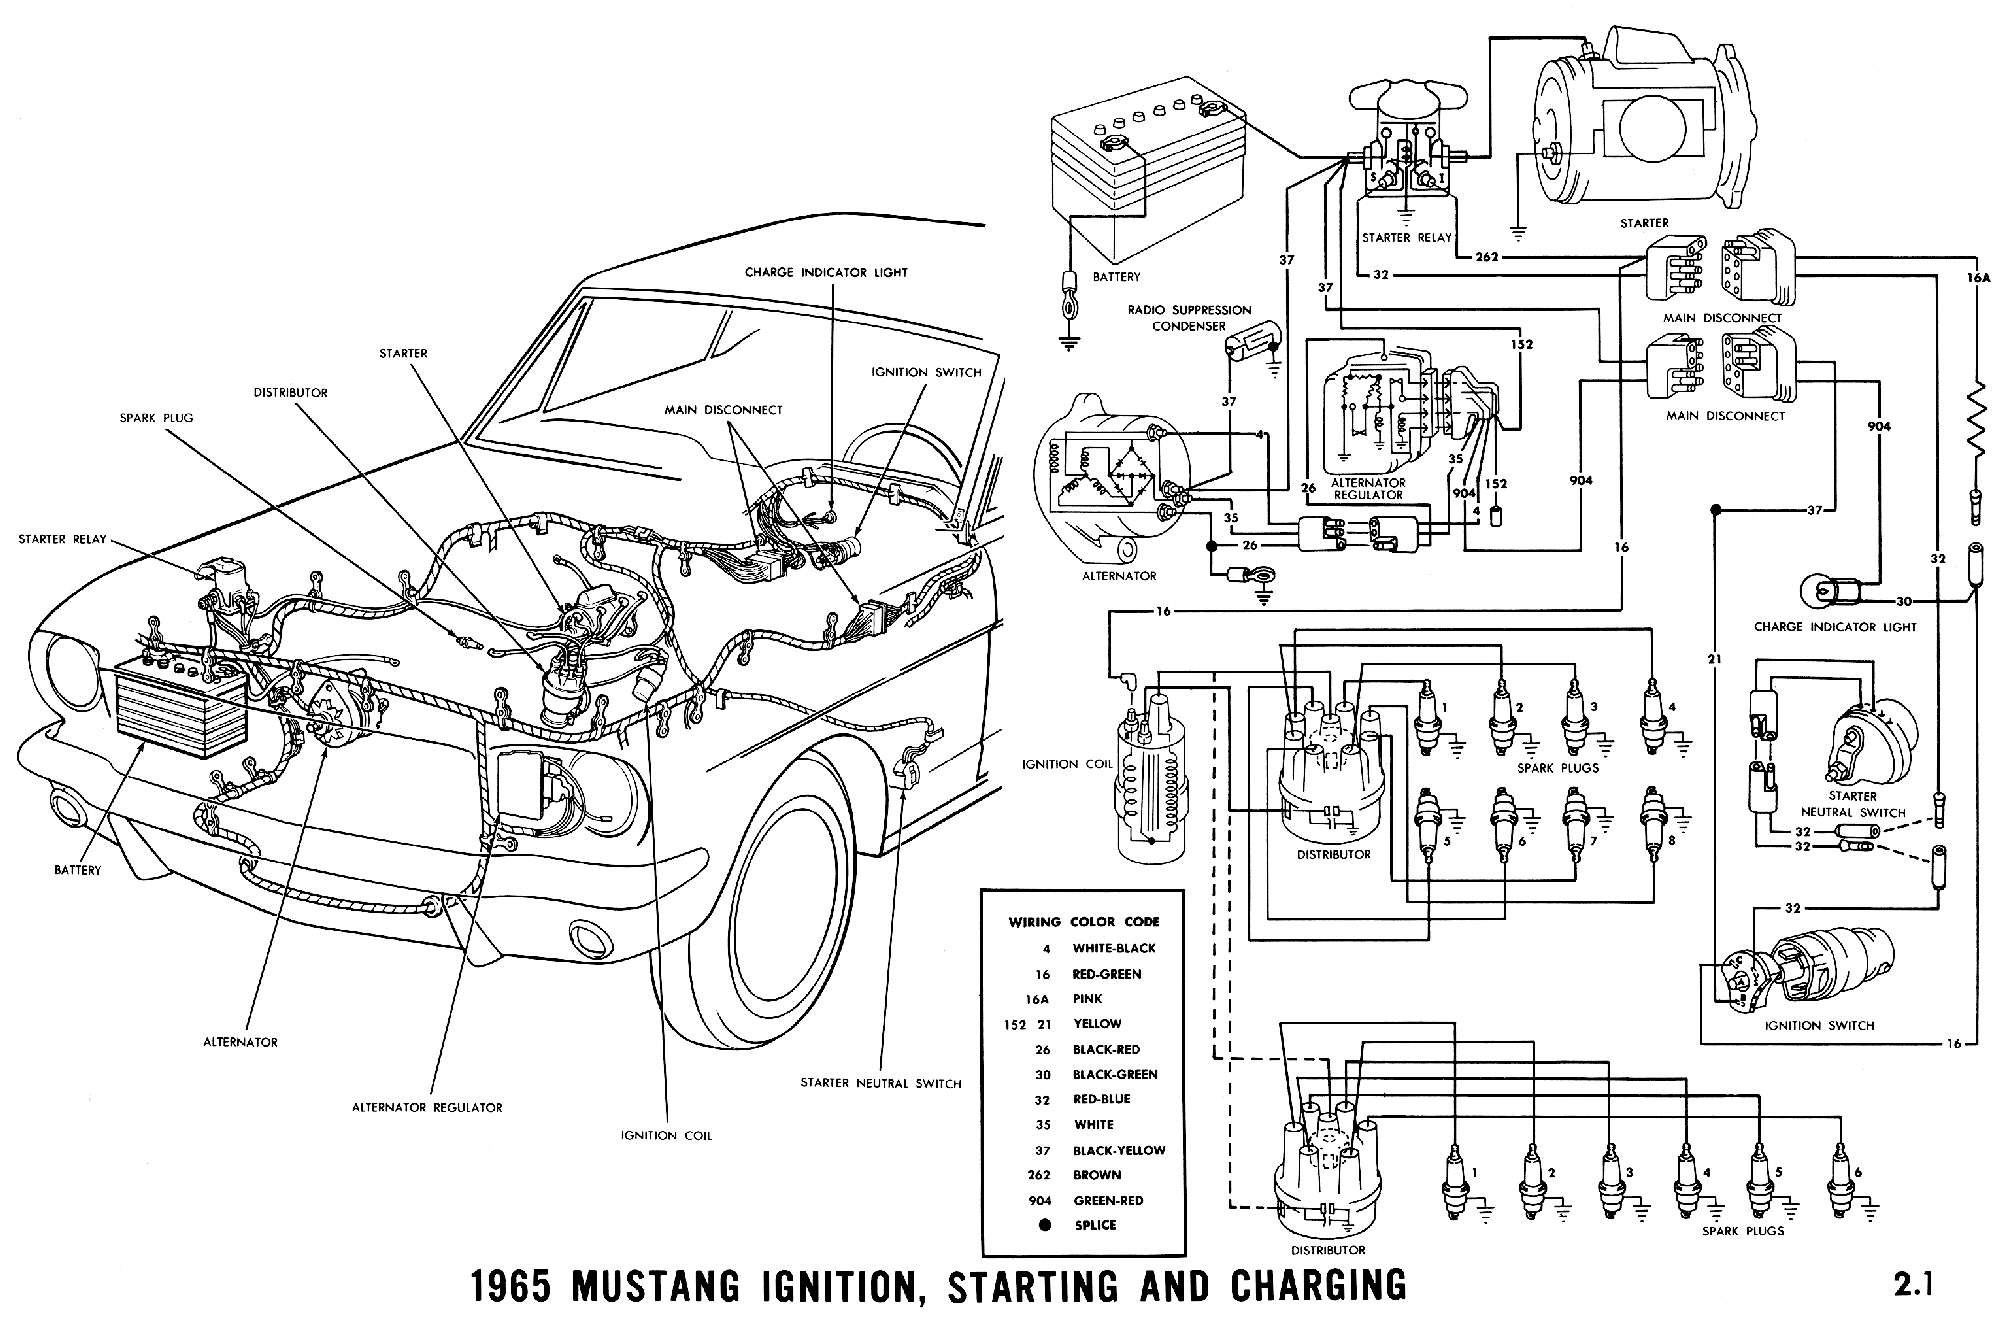 blueprints ford mustang engine diagram diy enthusiasts wiring rh broadwaycomputers us 2002 Ford Mustang Engine Diagram 98 Ford Mustang Engine Diagram